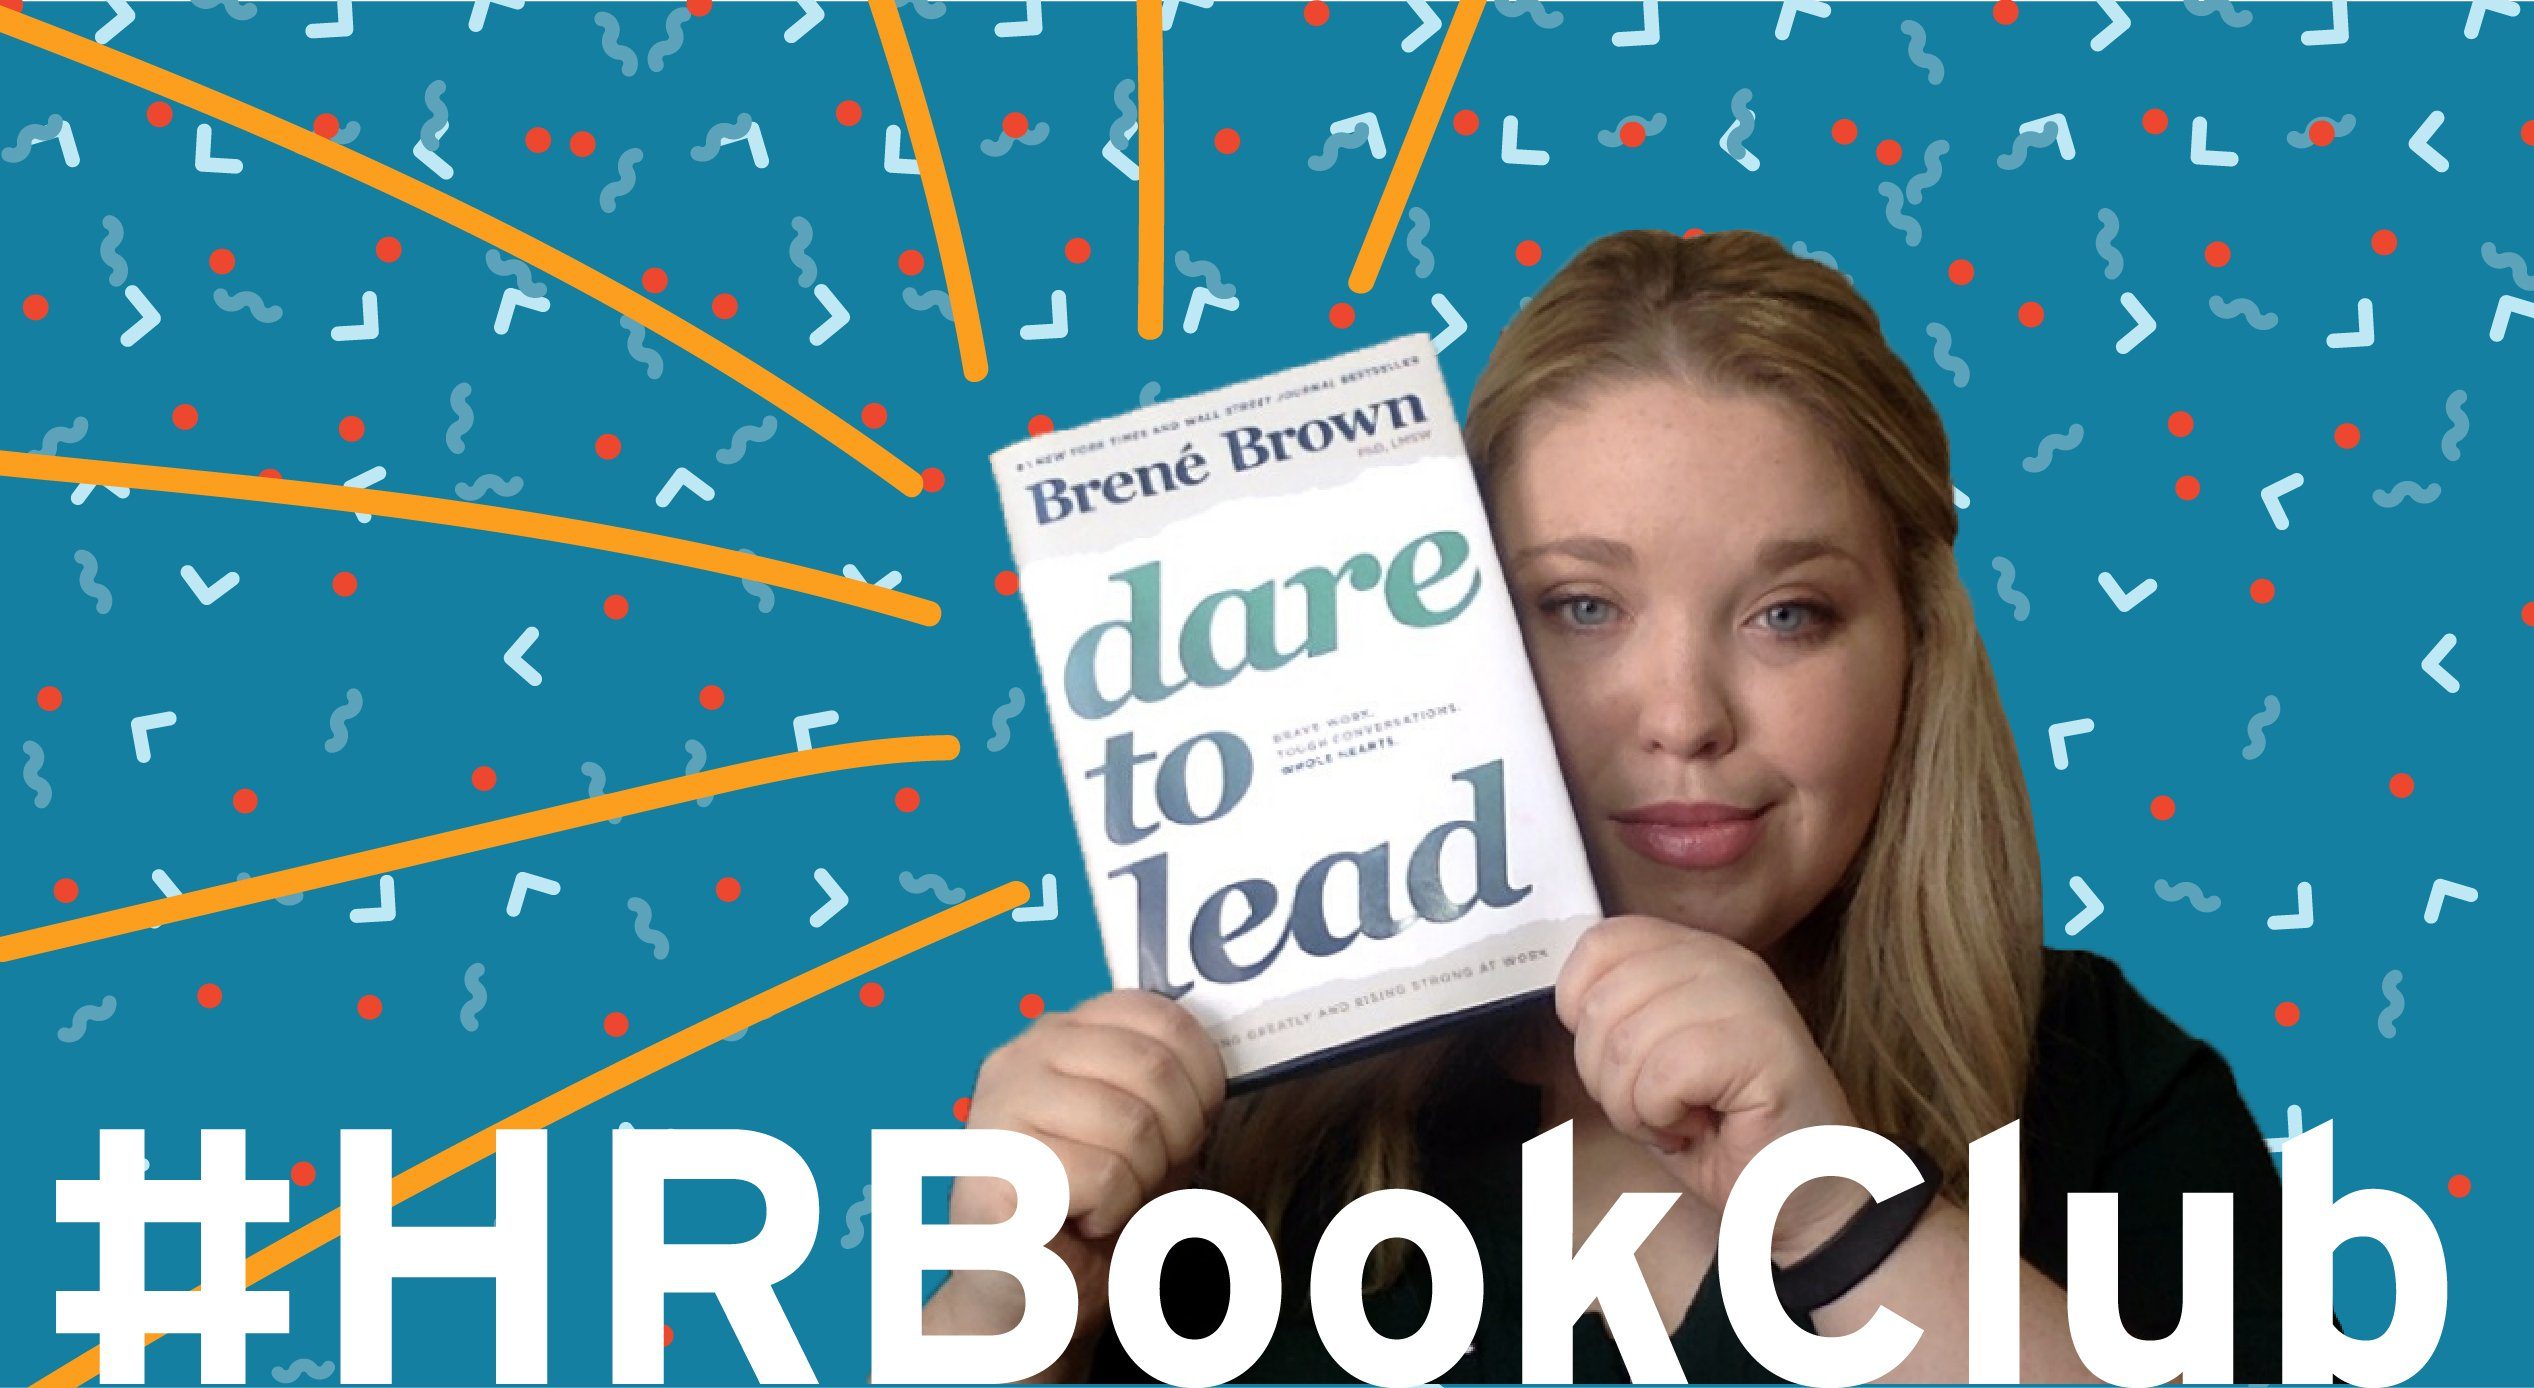 #HRBookClub: Dare to Lead by Brené Brown